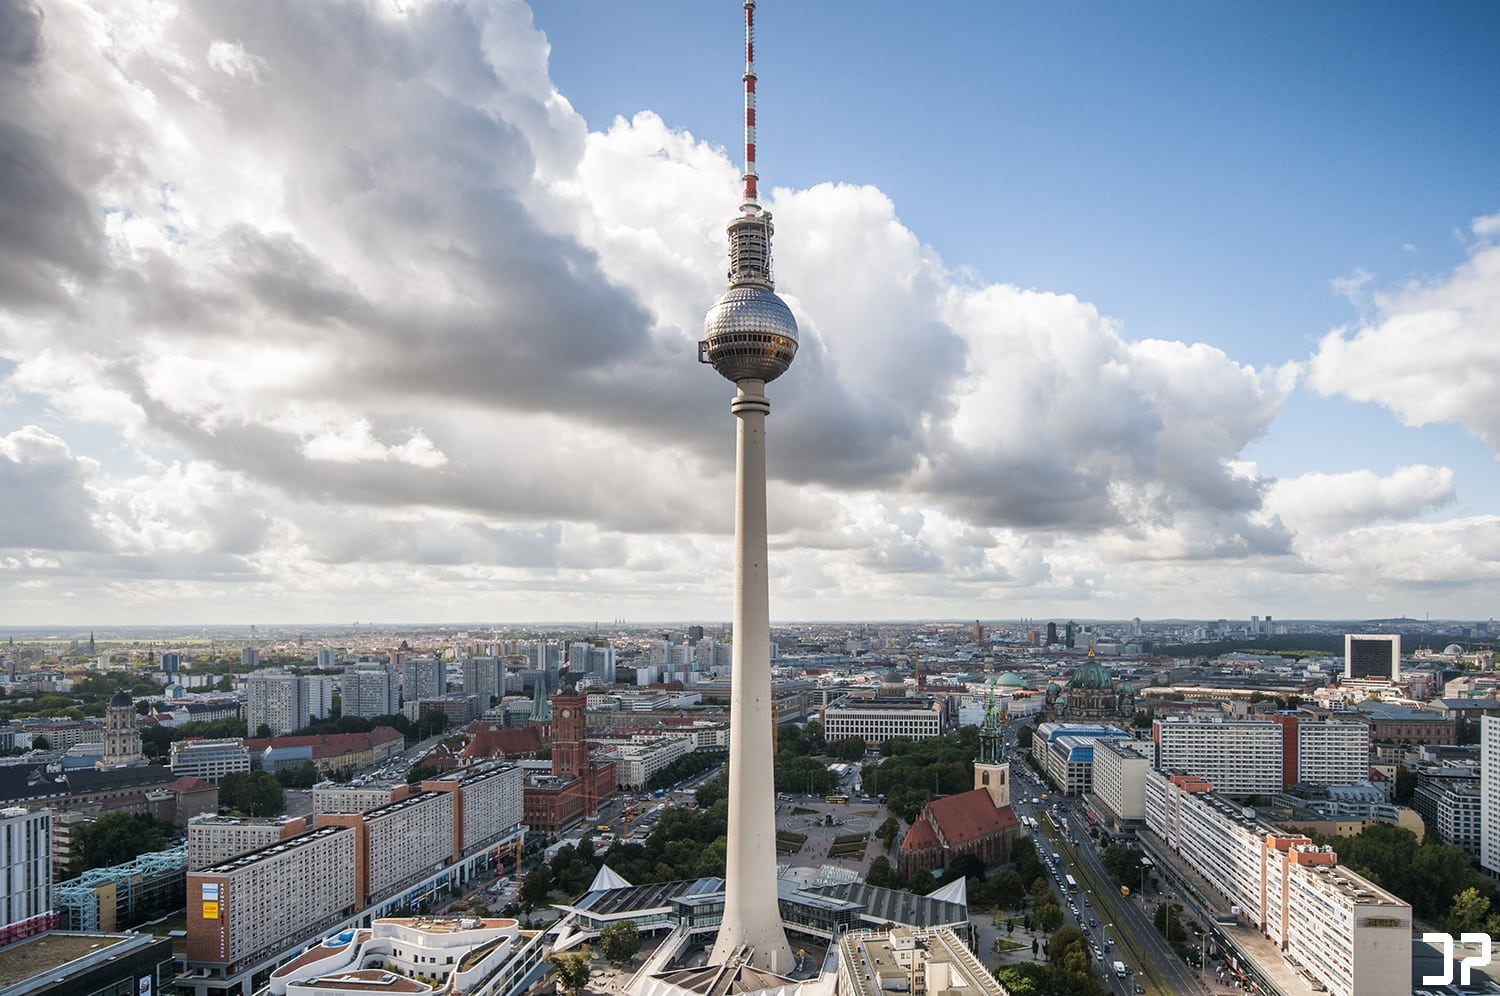 Berlin - Alexanderplatz | Park Inn observation deck